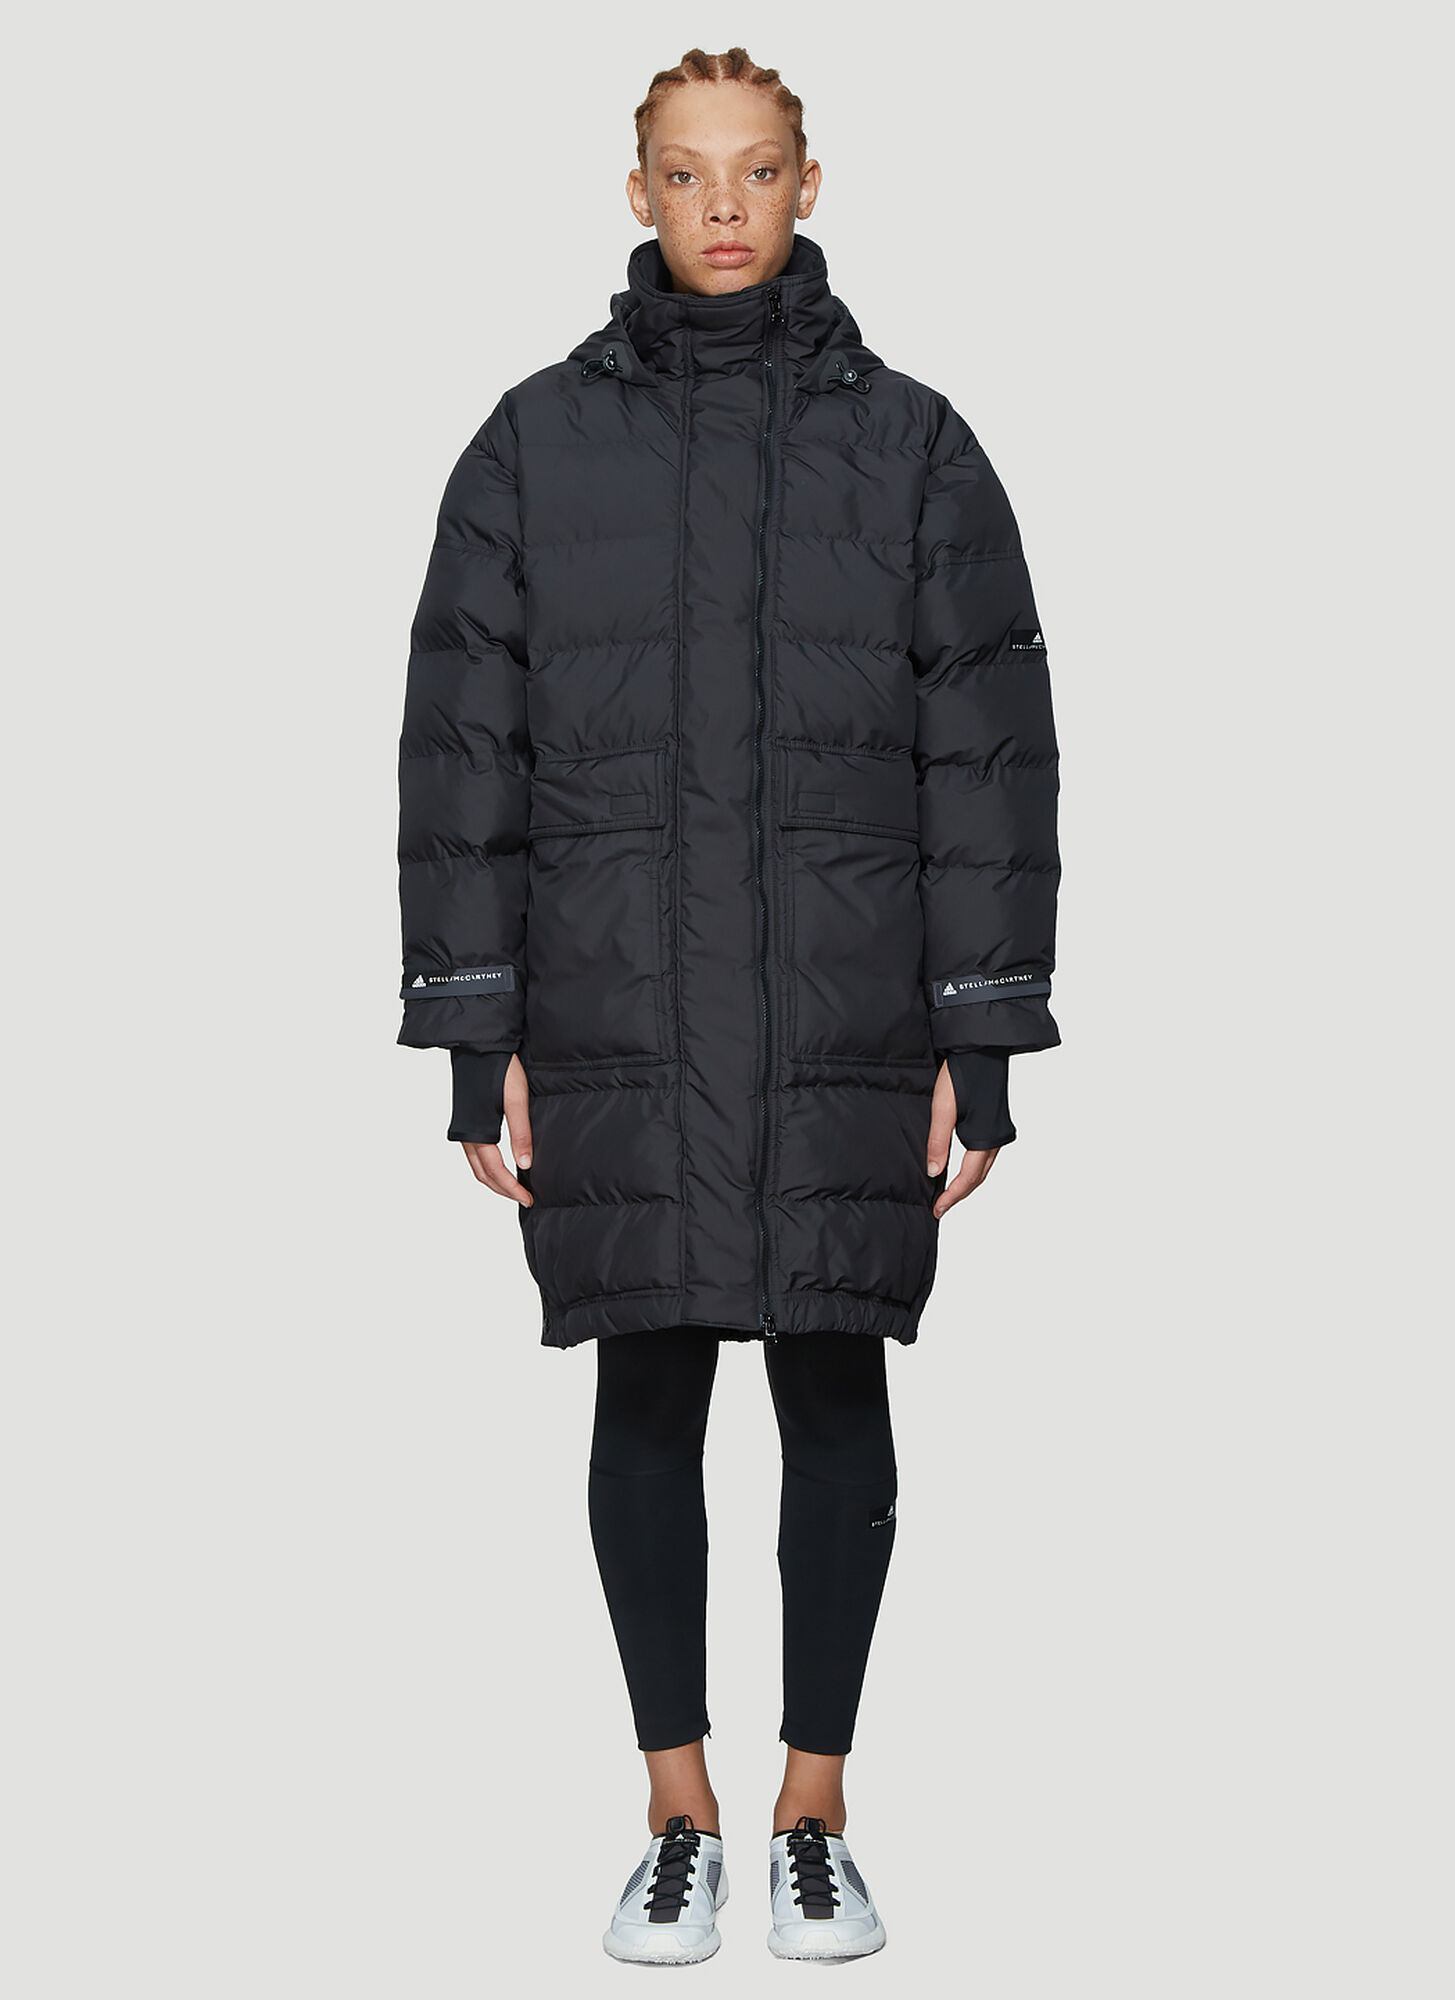 adidas by Stella McCartney Long Padded Jacket in Black